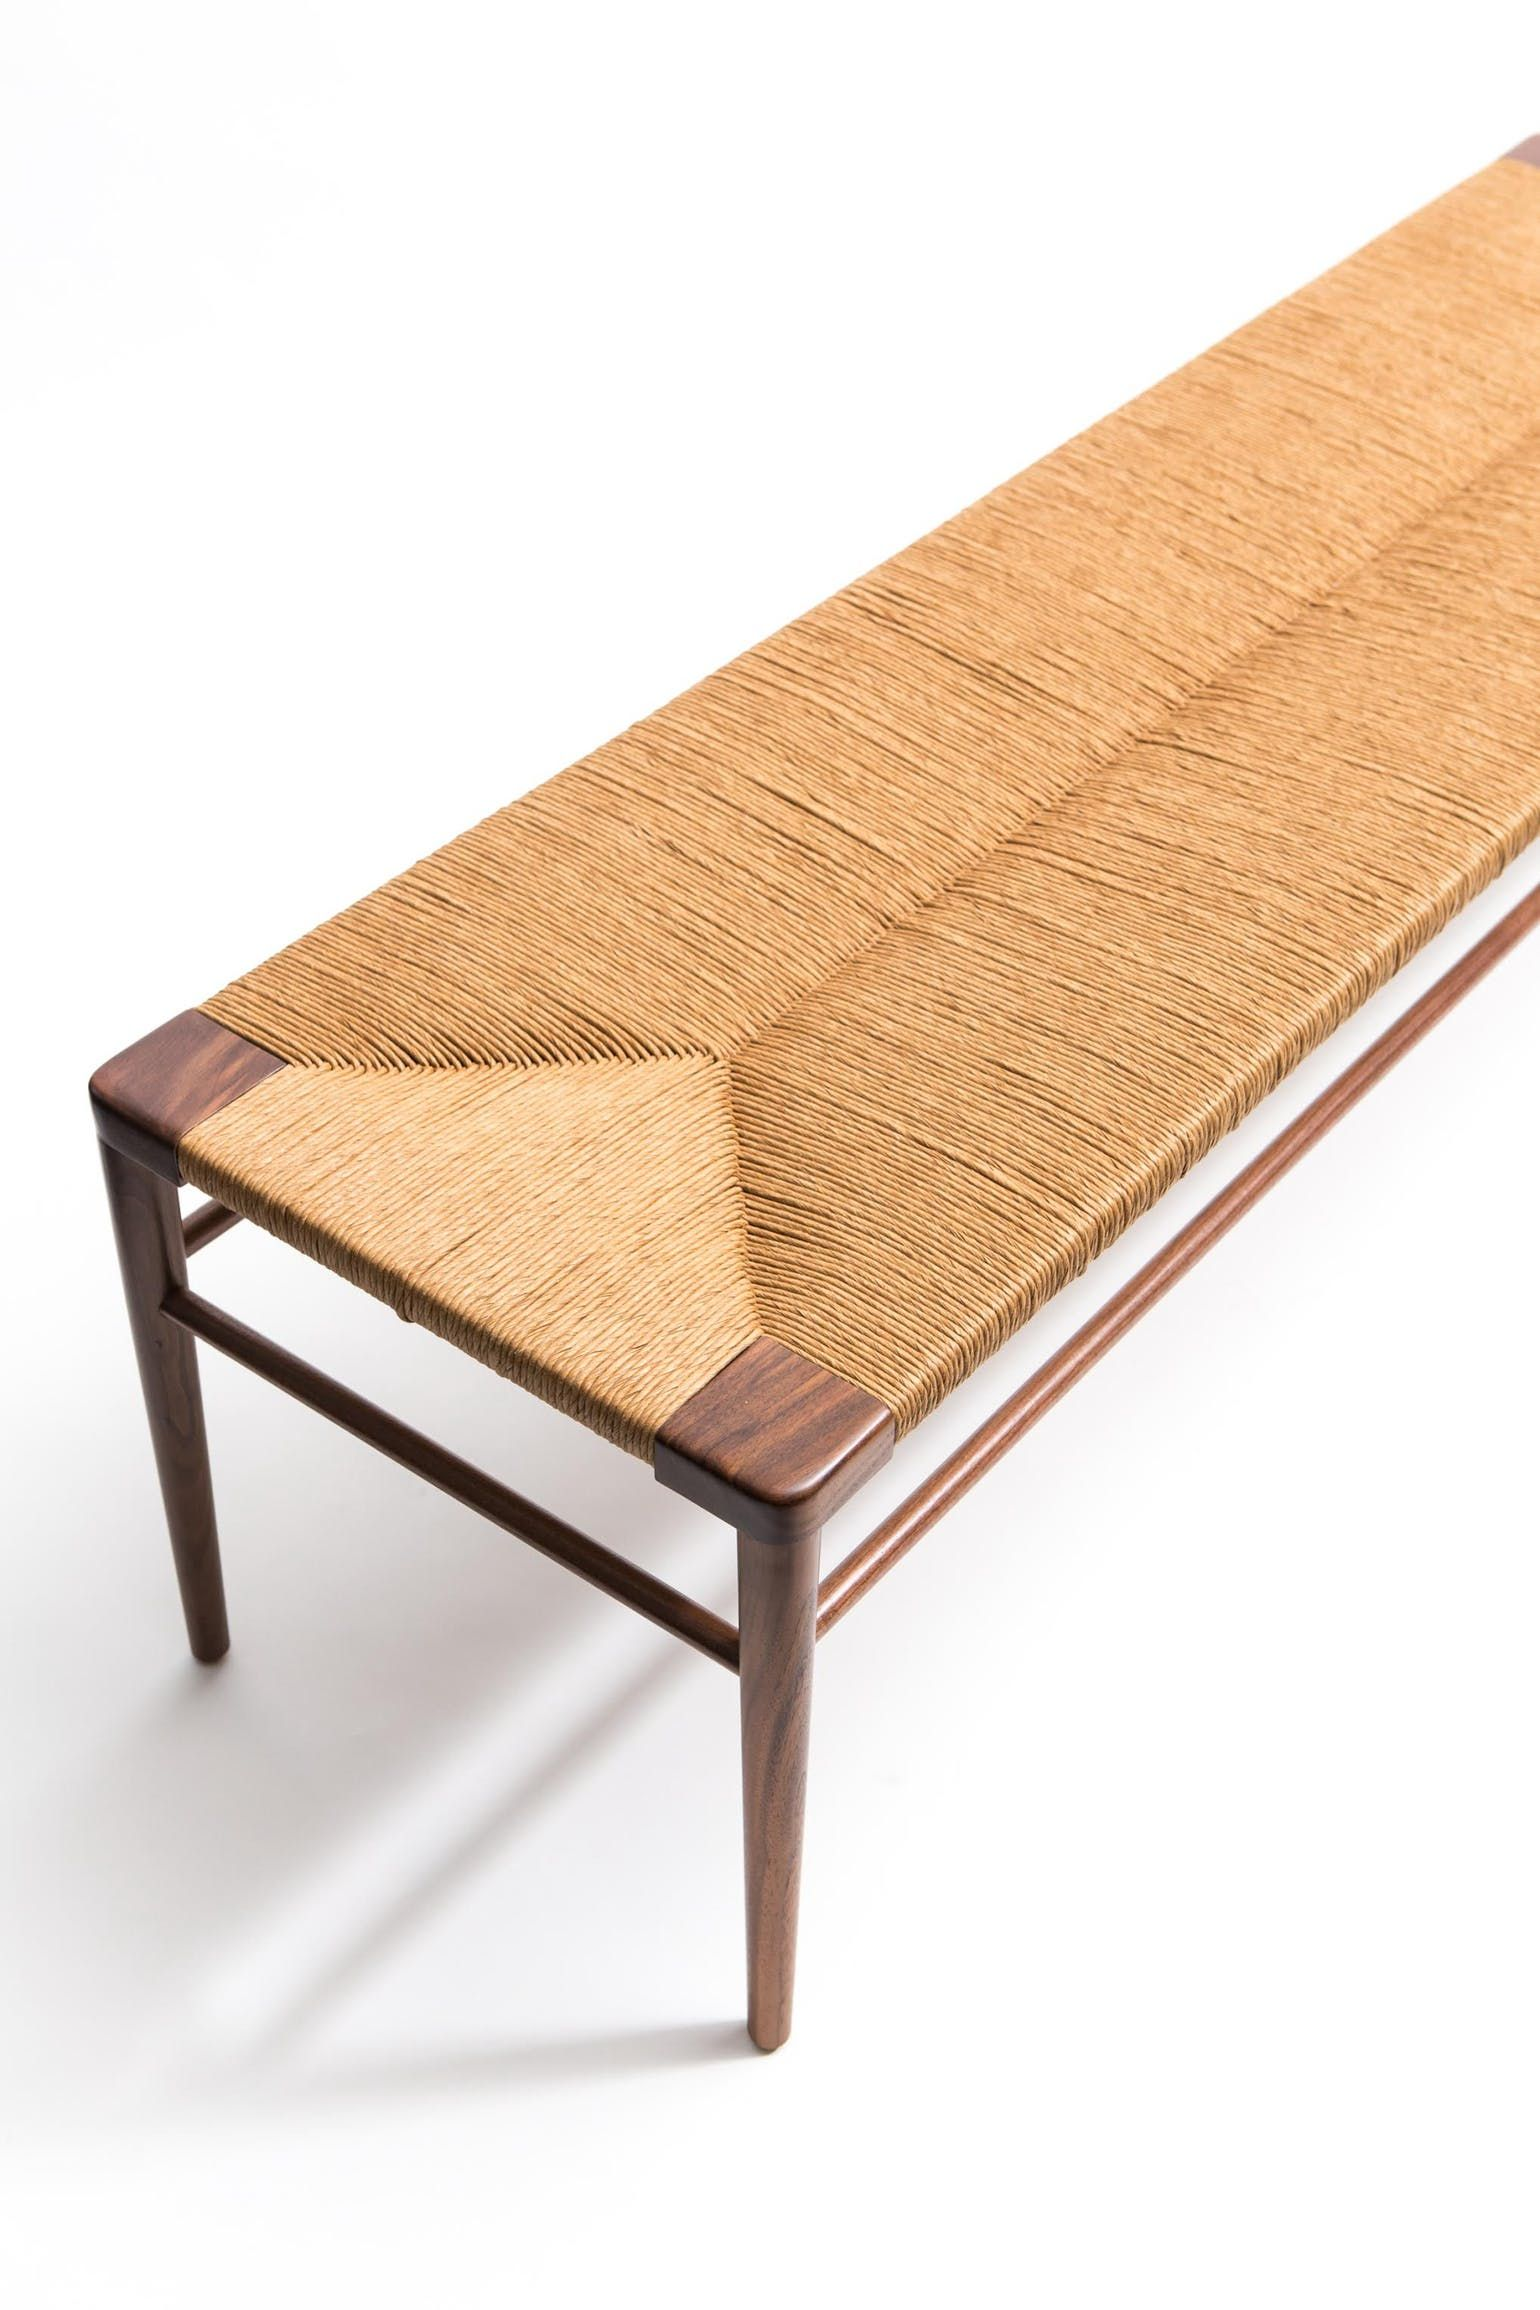 Buy Woven Rush Bench   RLB By Smilow Design   Made To Order Designer